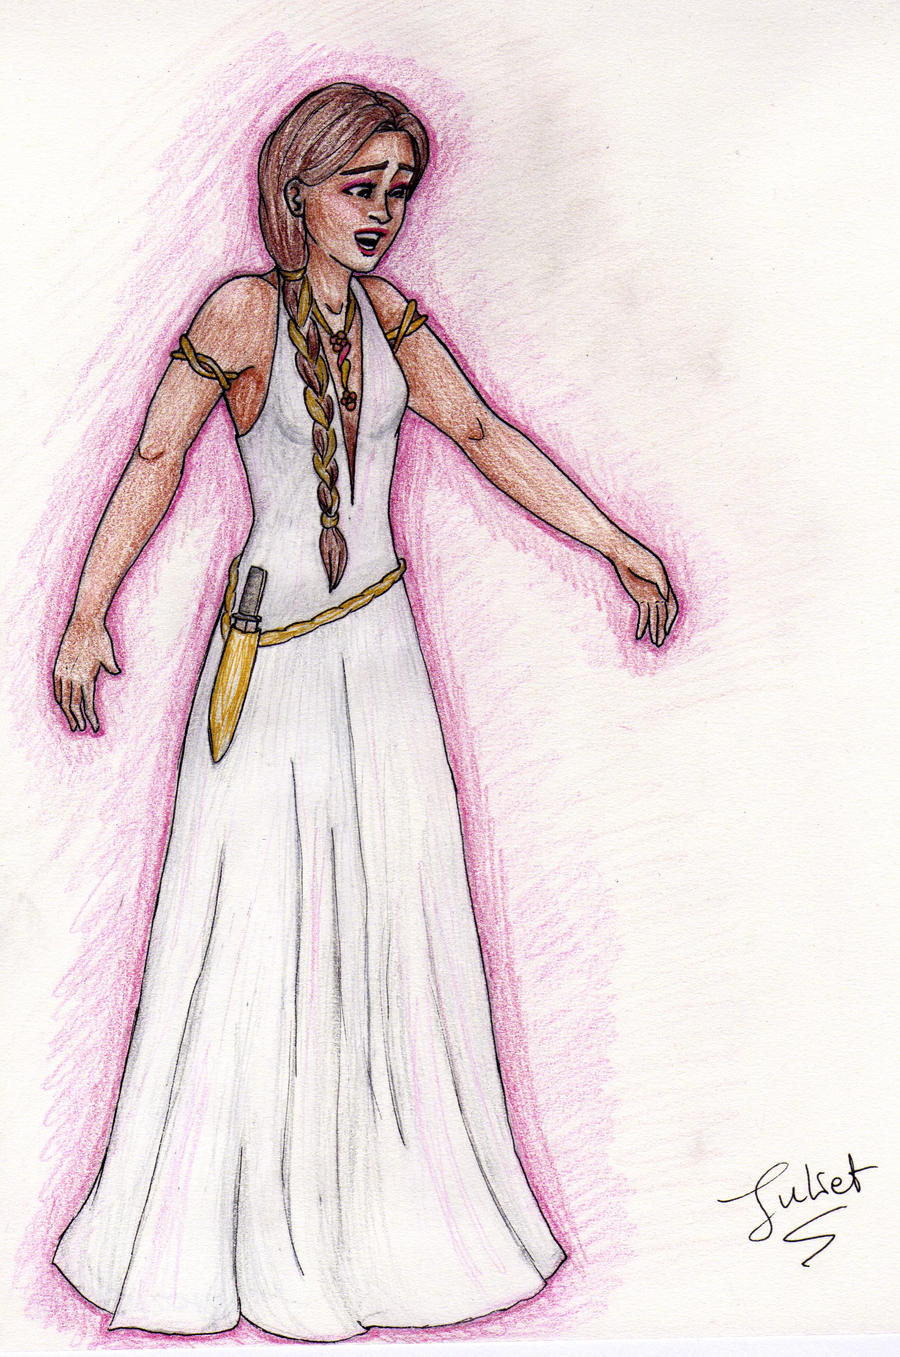 Uncategorized Drawings Of Aphrodite daughter of aphrodite by tonksgiuly on deviantart tonksgiuly